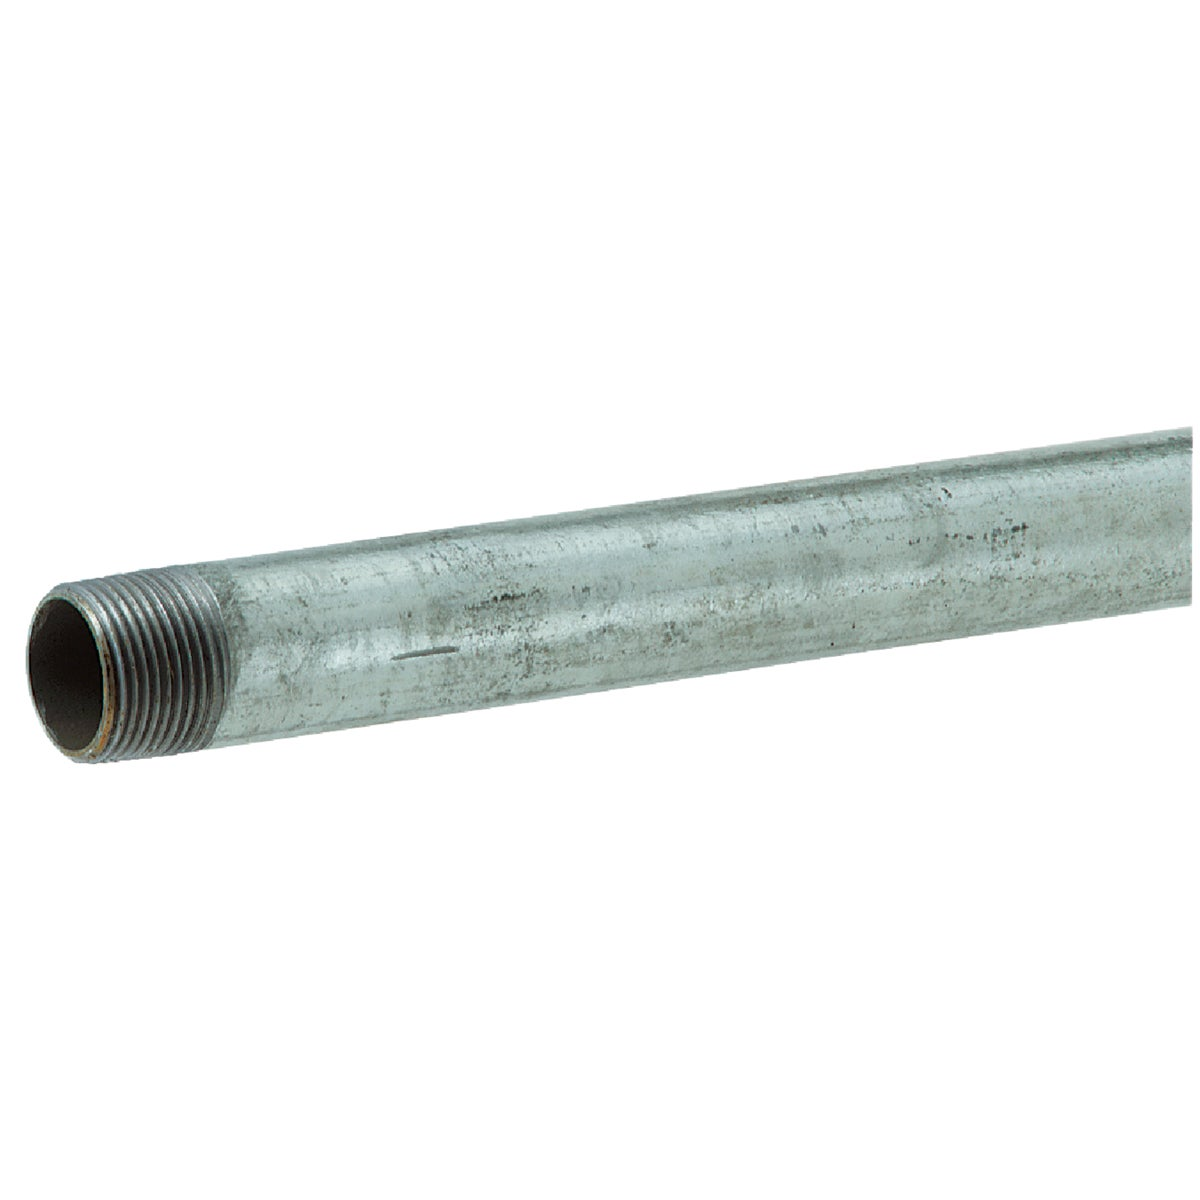 1X48 GALV RDI-CT PIPE - 1X48 by Southland Pipe Nippl